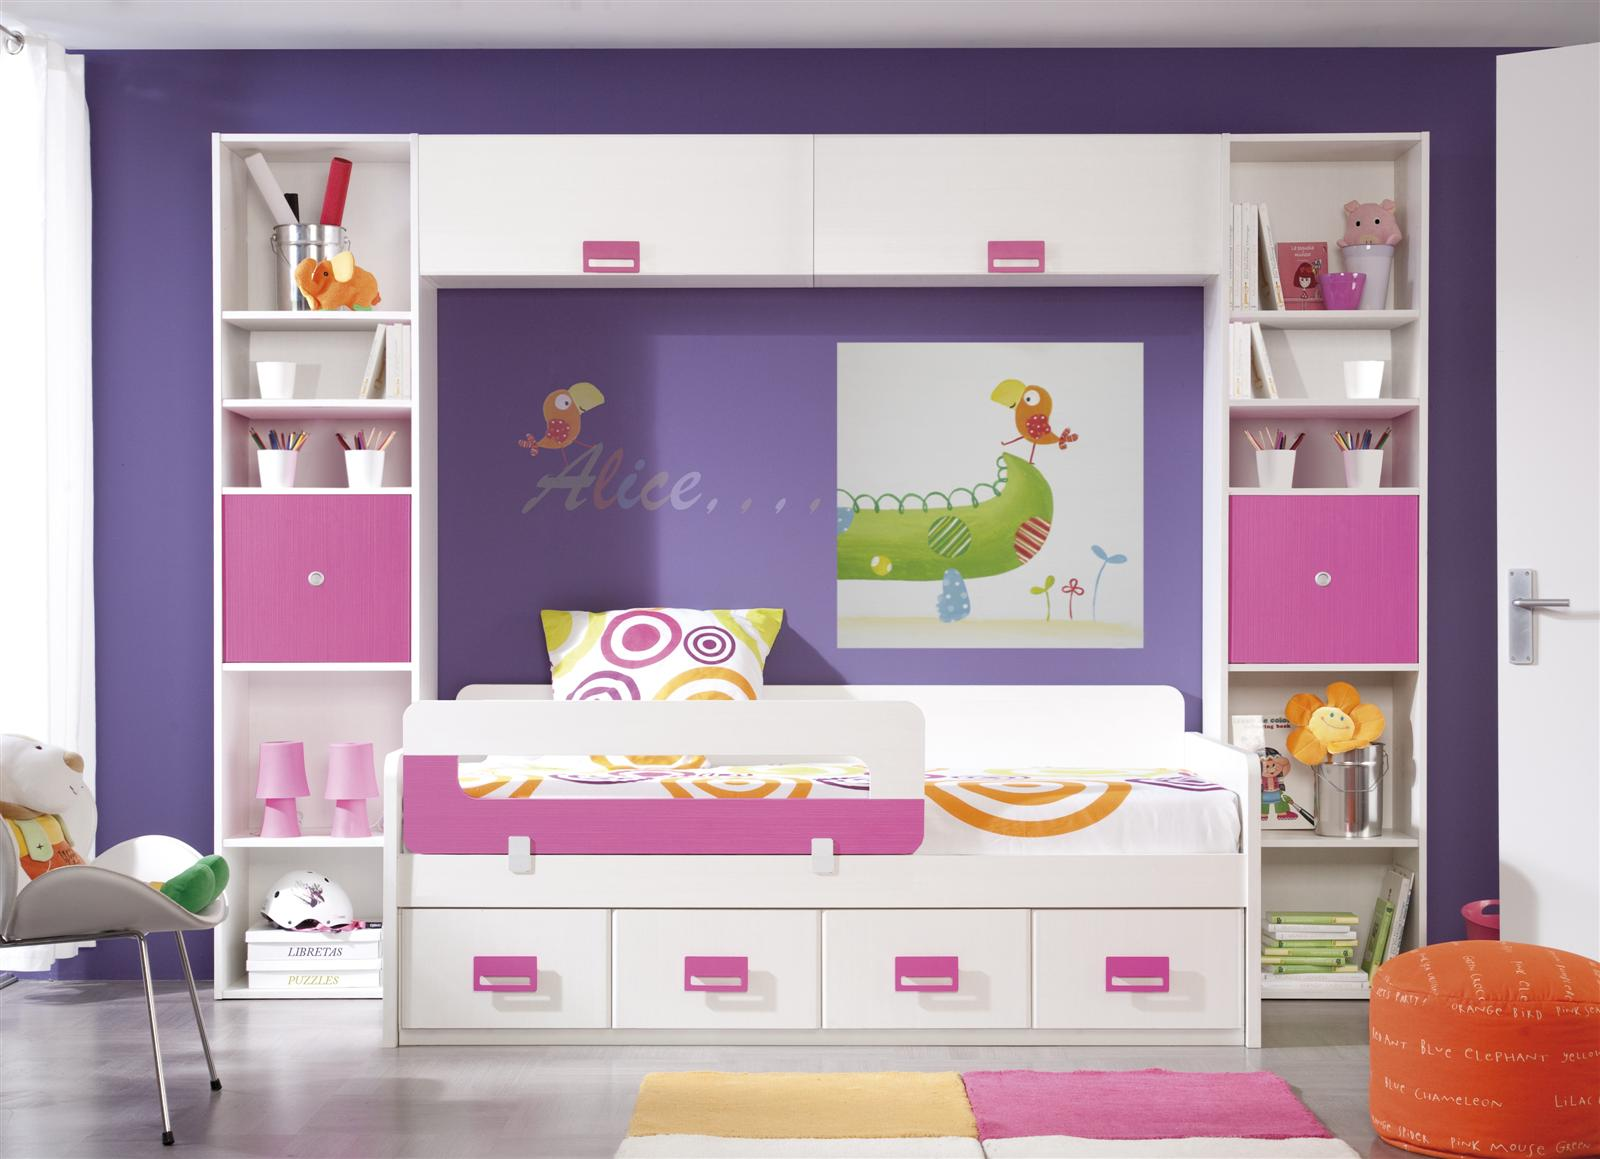 Psicolog a del color para decorar habitaciones infantiles for Decoracion dormitorios infantiles